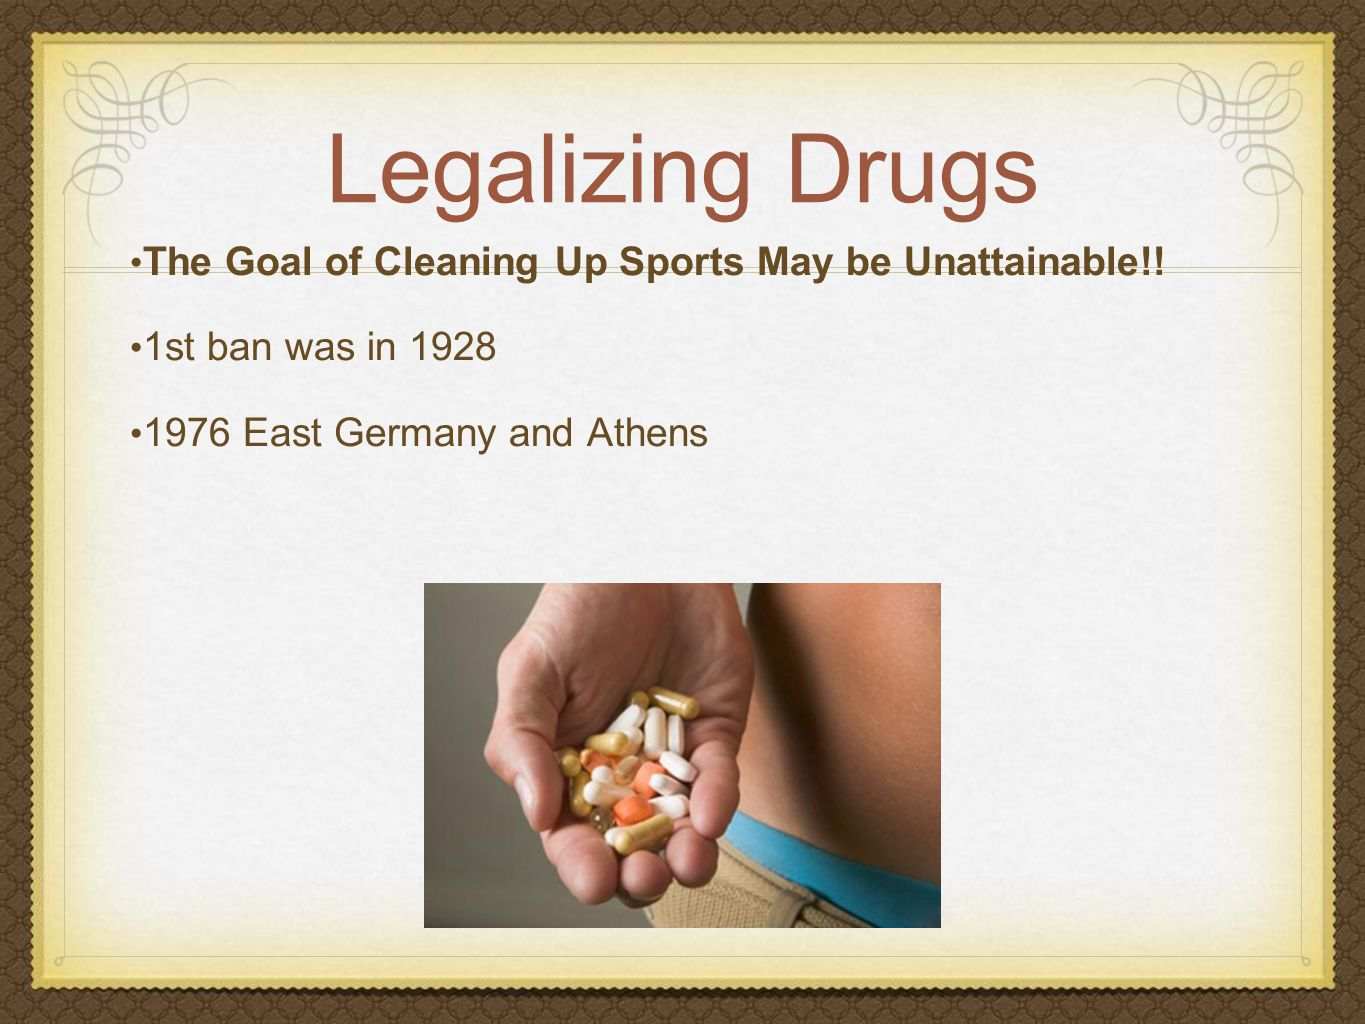 Legalizing Drugs The Goal of Cleaning Up Sports May be Unattainable!.